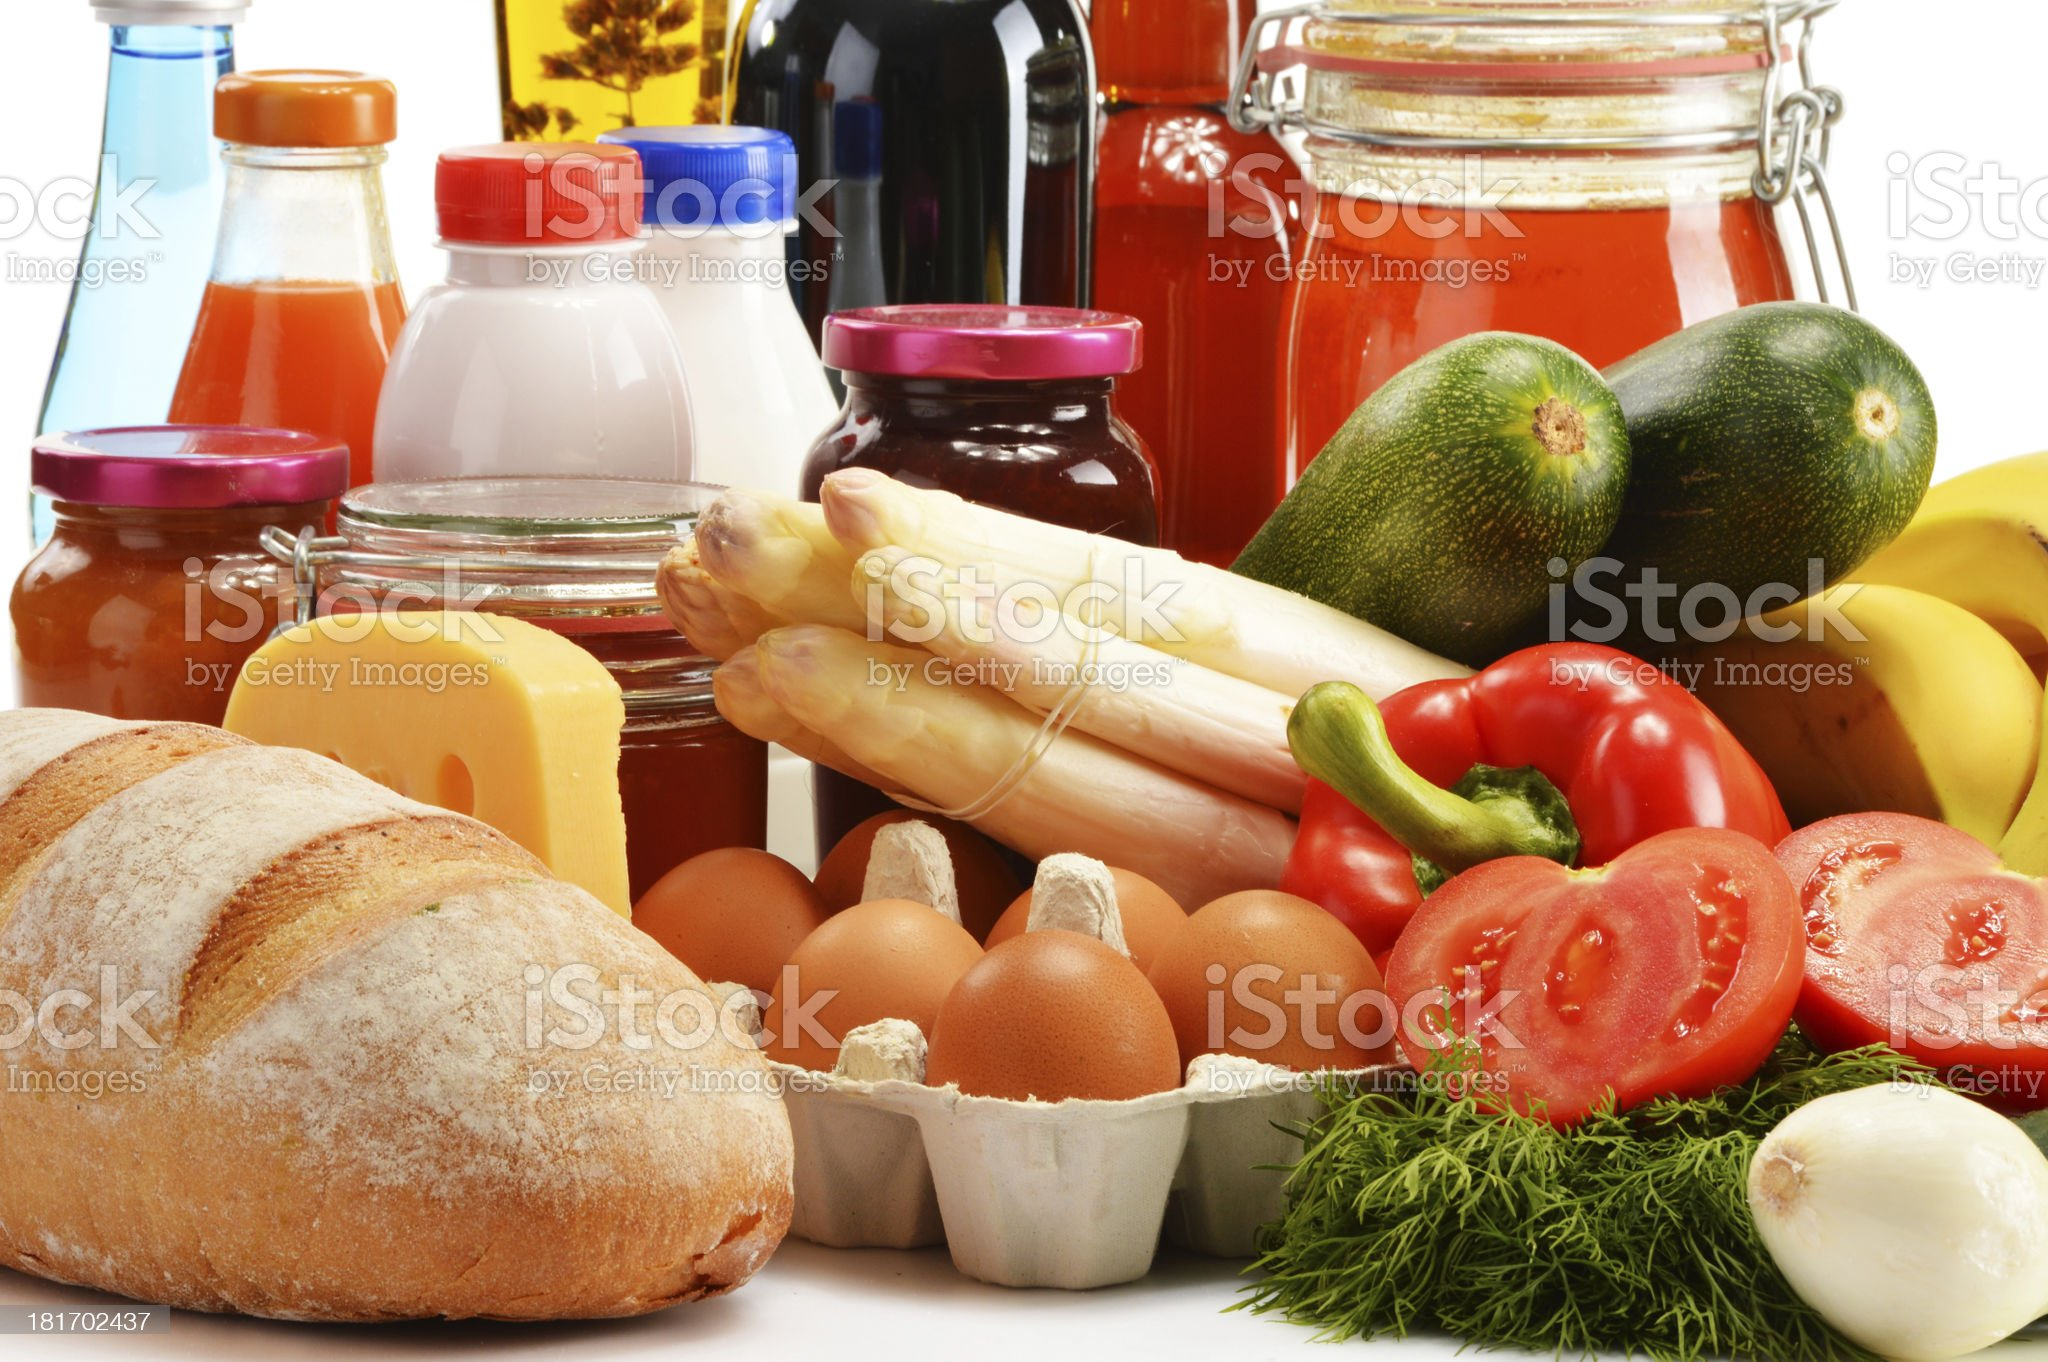 Composition with variety of grocery products royalty-free stock photo